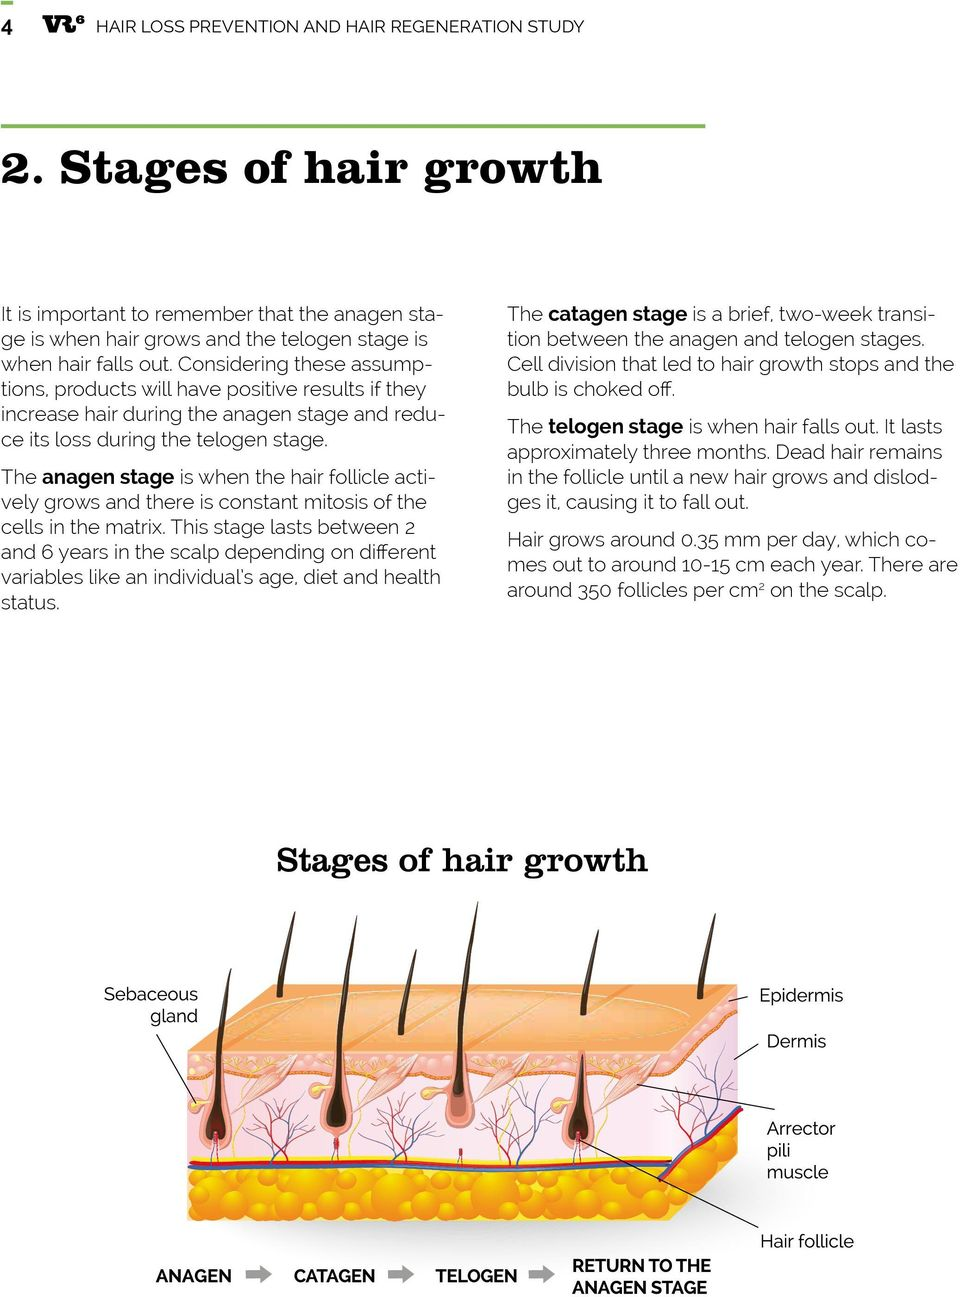 The anagen stage is when the hair follicle actively grows and there is constant mitosis of the cells in the matrix.